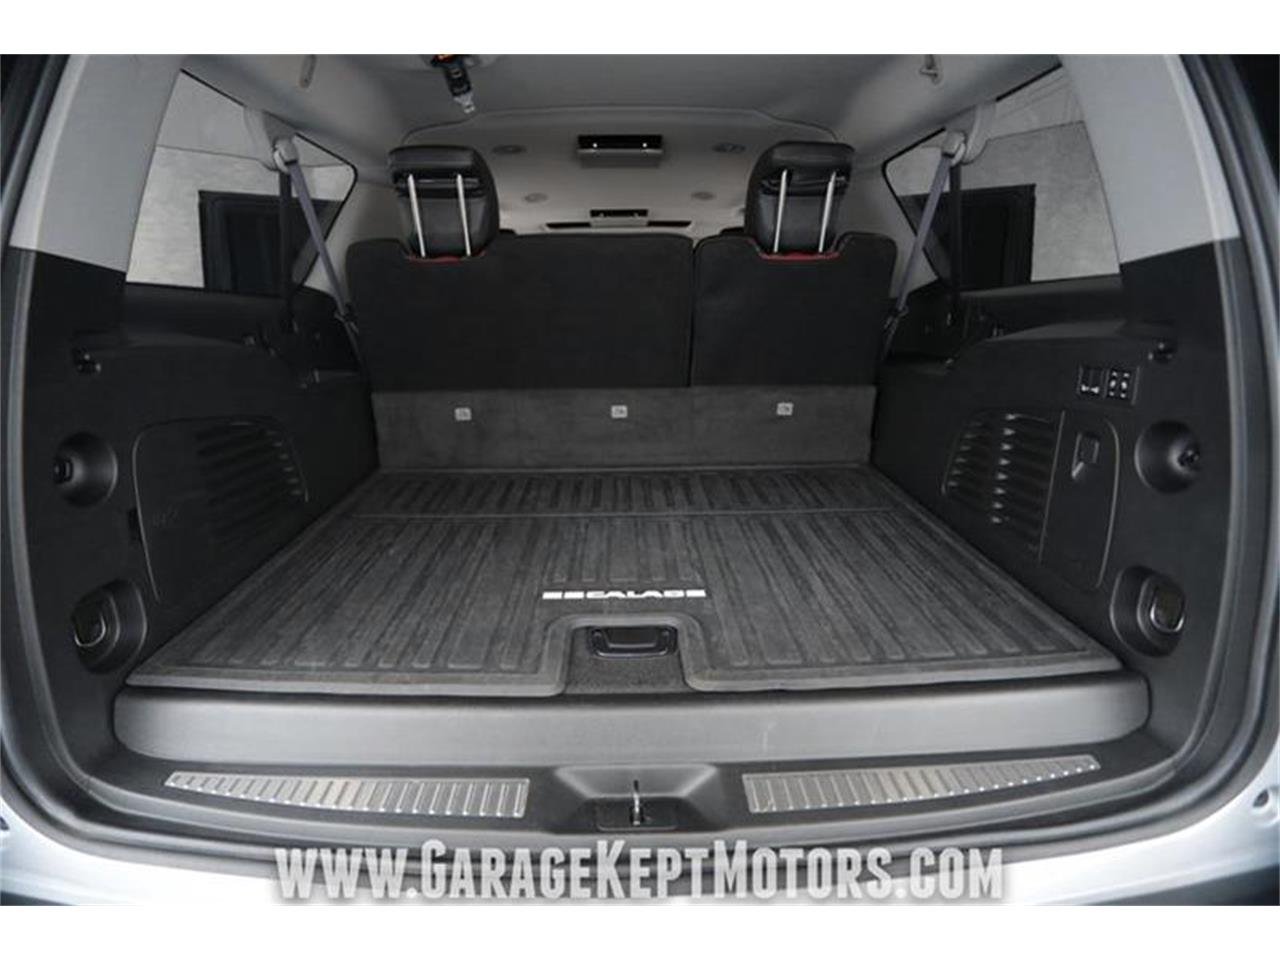 2015 Cadillac Escalade for sale in Grand Rapids, MI – photo 29